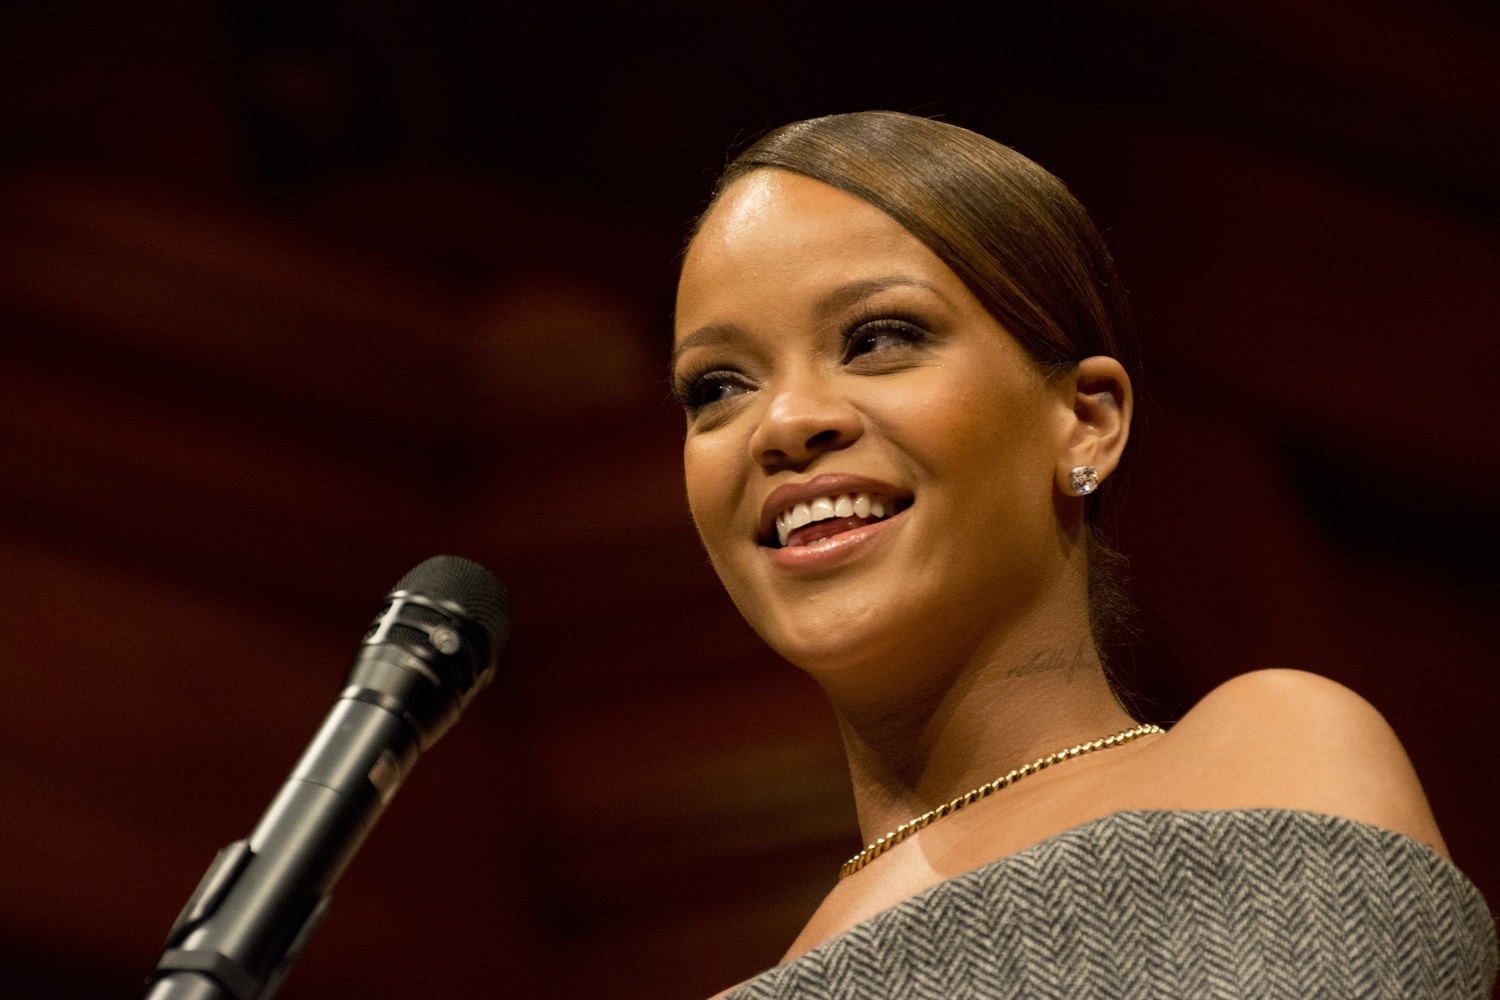 Acclaimed pop singer and philanthropist Rihanna speaks in Sanders Theater Tuesday evening. Rihanna was the recipient of the Harvard Foundation's Peter J. Gomes Humanitarian of the Year Award this year.